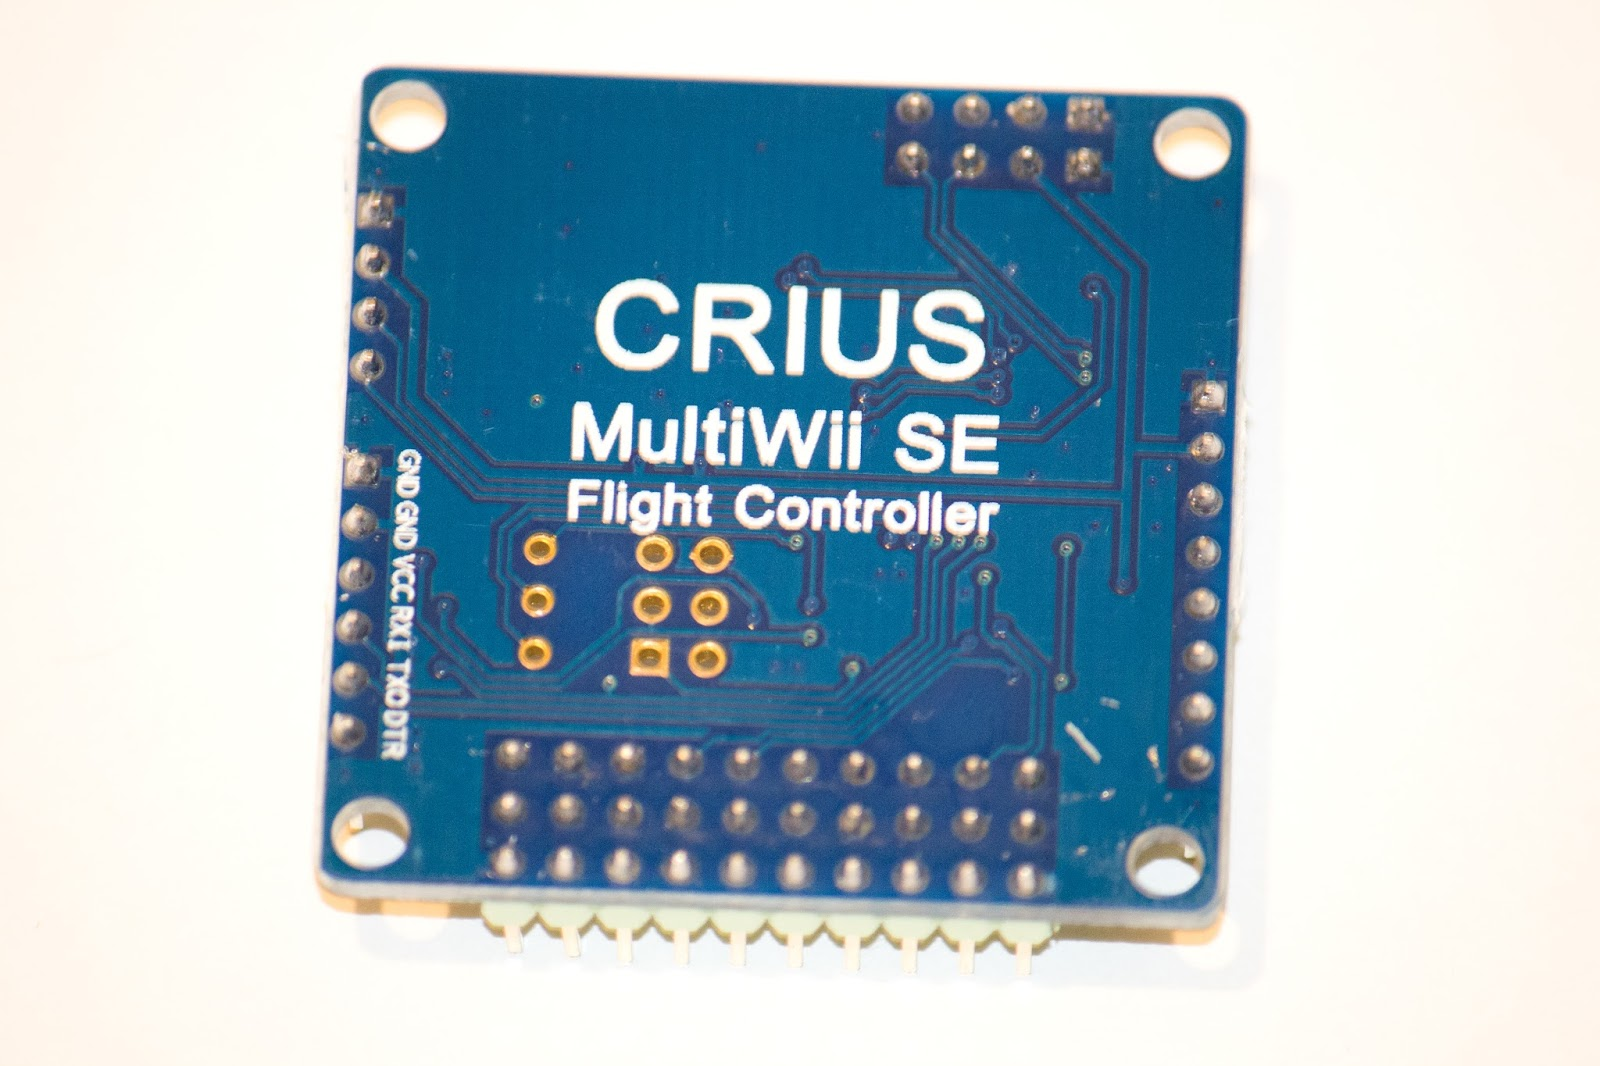 crius multiwii v2 5 rc timer hp2812 1000kv motors quadcopter as for speed controllers hobbyking was out of the f 30a speed controllers when i ordered so i bought some hobbywing skywalker 20a esc but the seller only